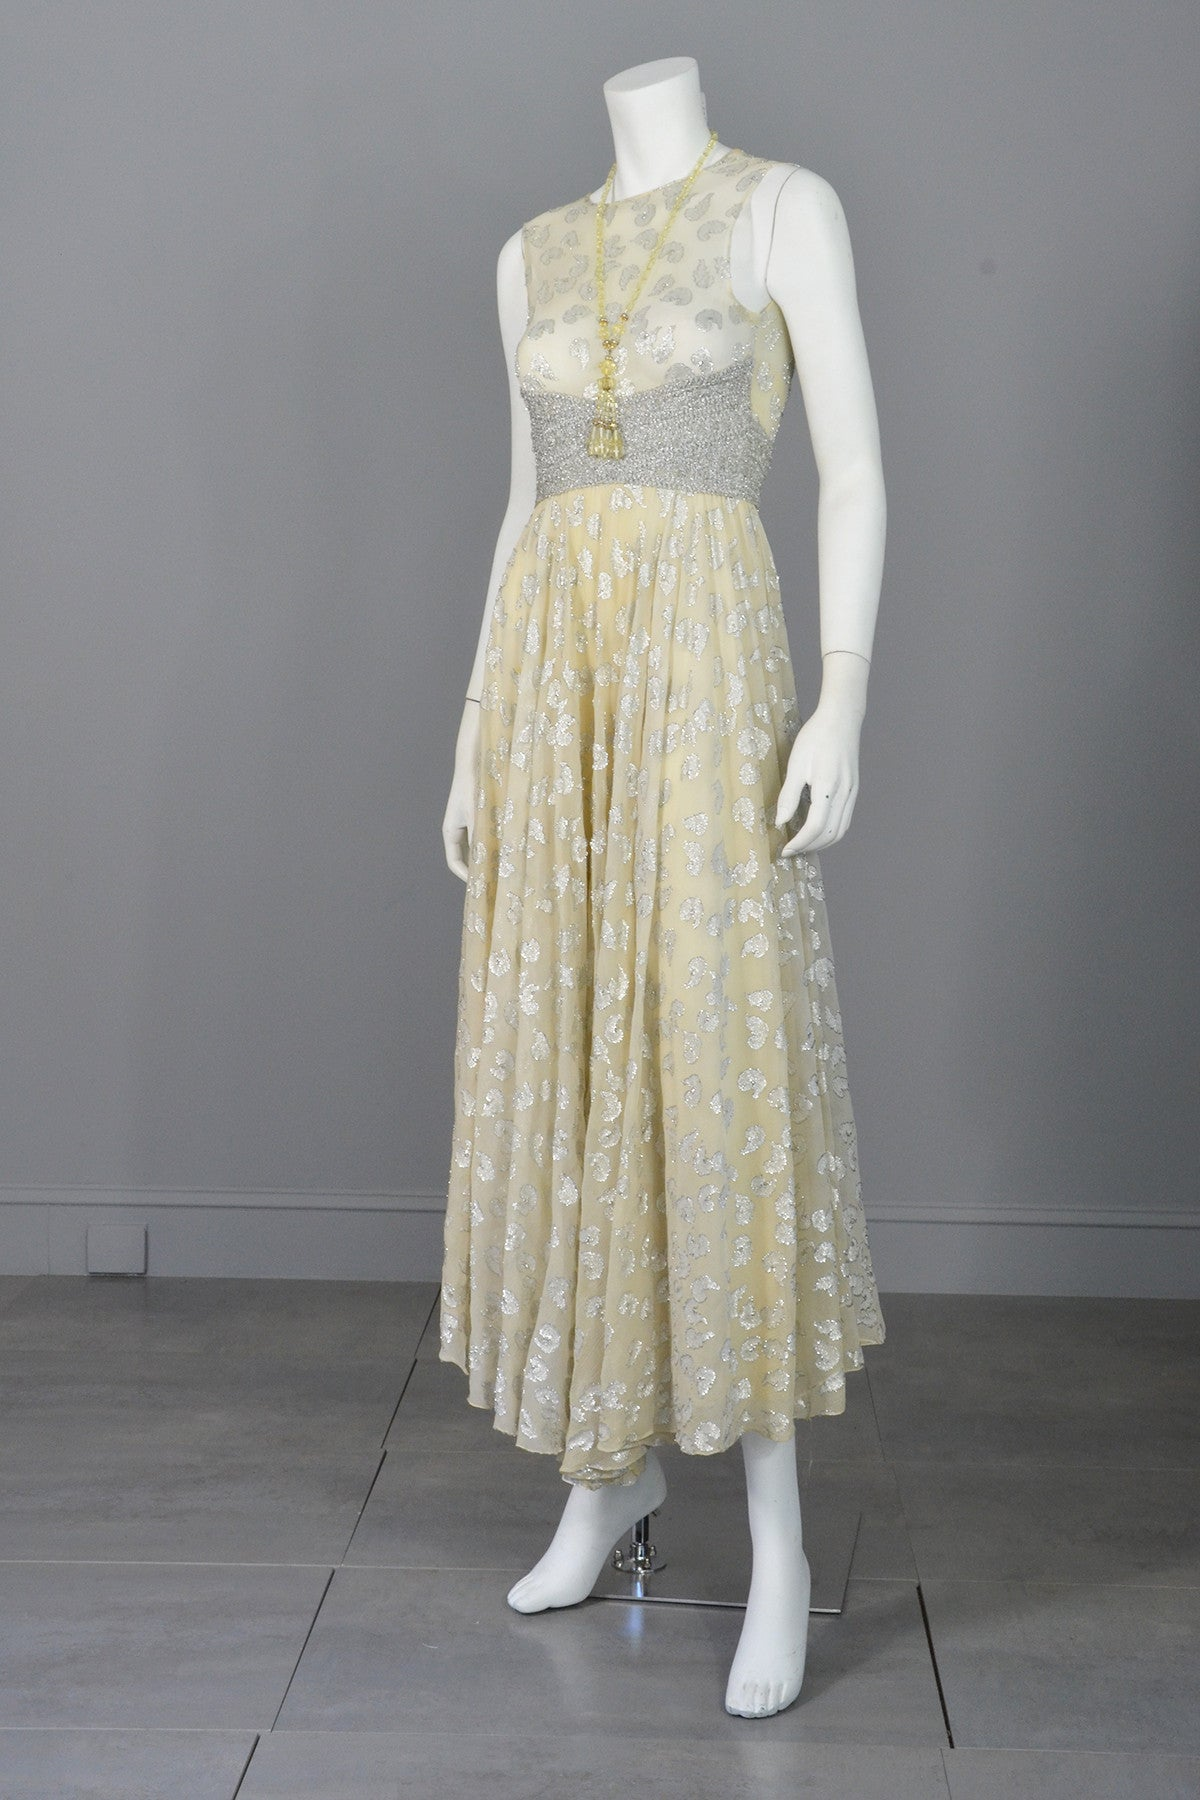 60s 70s Silver Metallic Lame on Cream Chiffon Maxi Dress Gown Adele Simpson